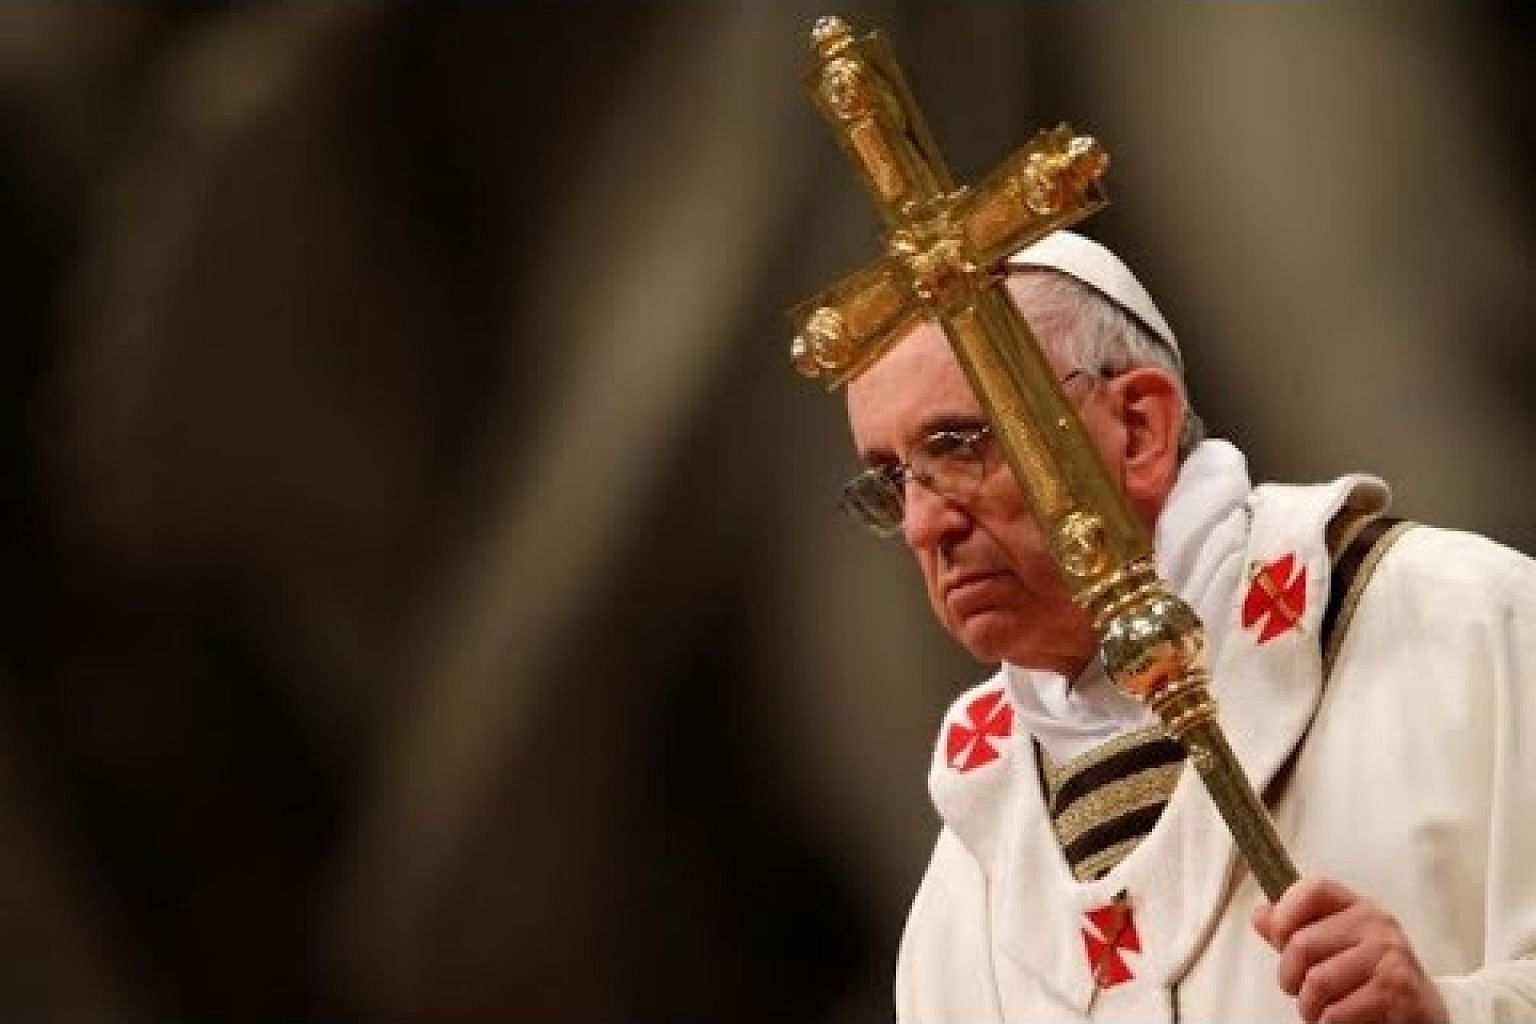 Pope ends 'pontifical secrecy' in abuse probes